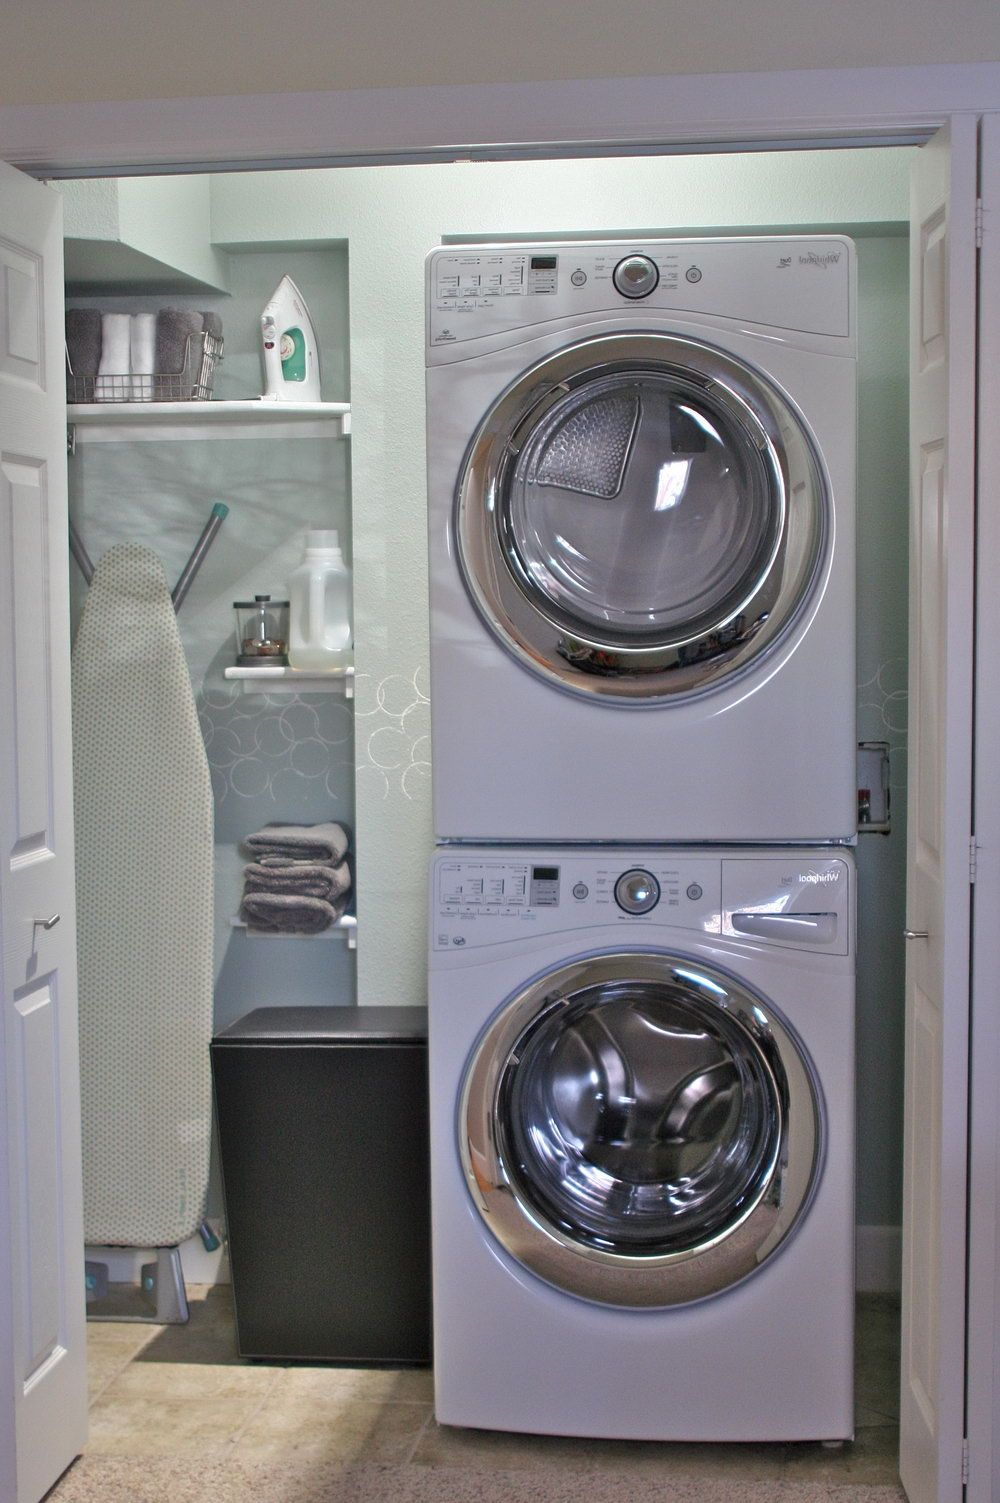 Small Laundry Room Ideas Stackable Washer Dryer Part - 21: Ideas. Effective Stackable Washer And Dryer Laundry Room Organization Ideas.  Excellent Small Laundry Room